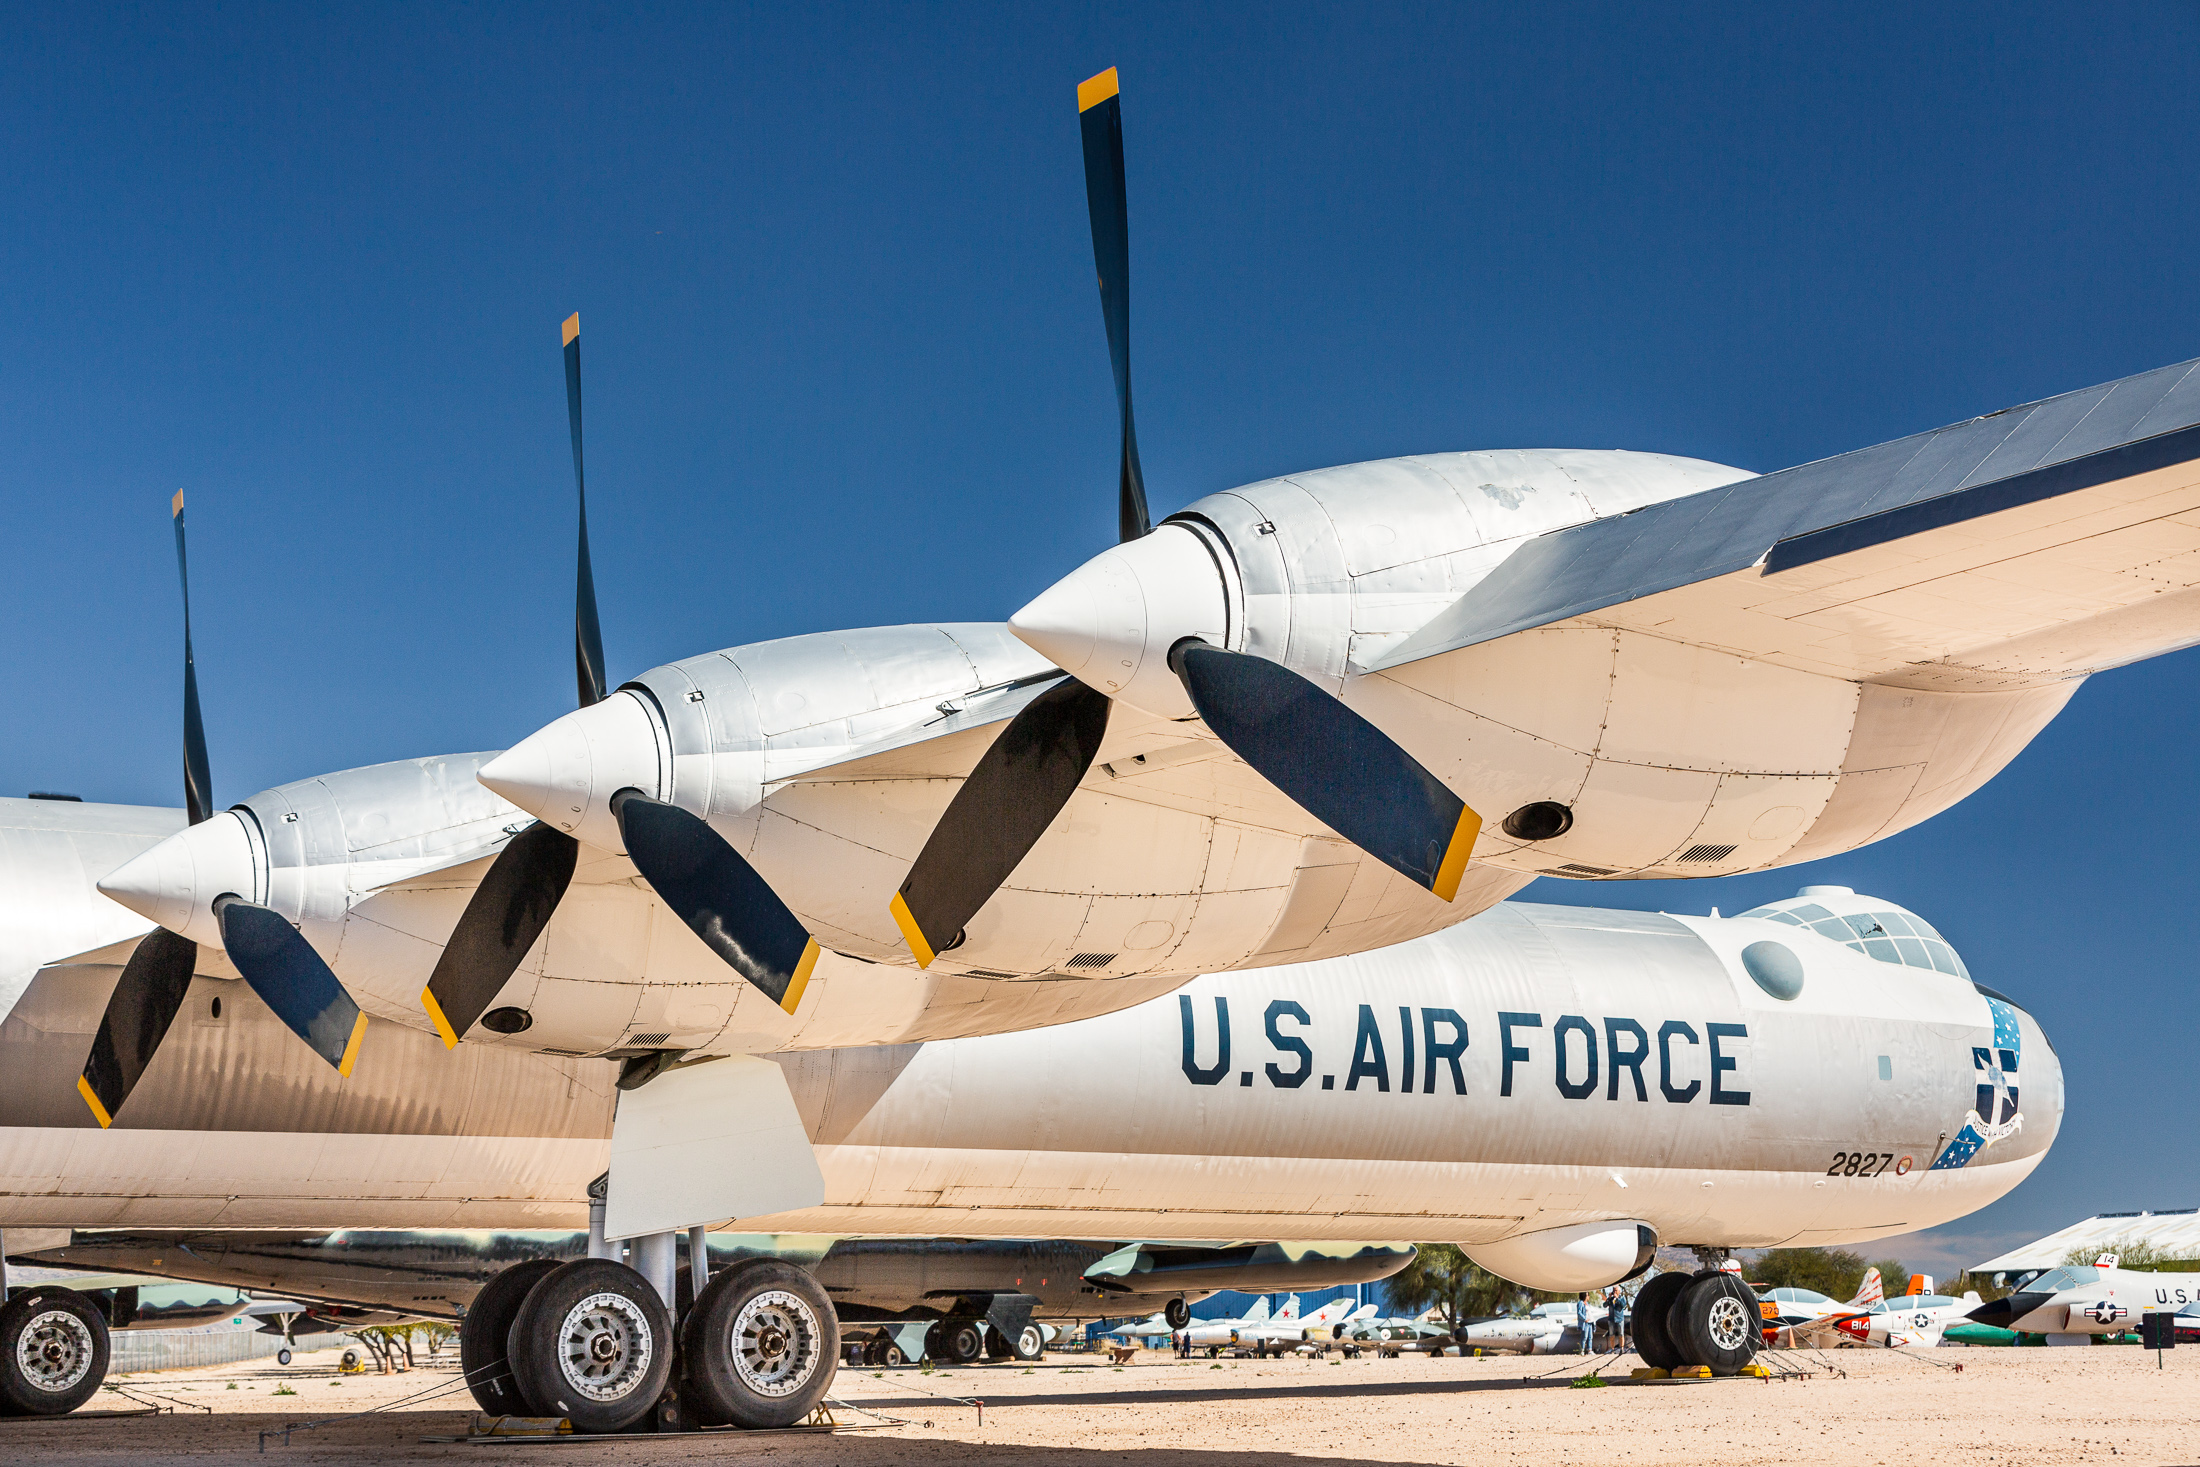 Pima_Air_Space_Museum_6111.jpg